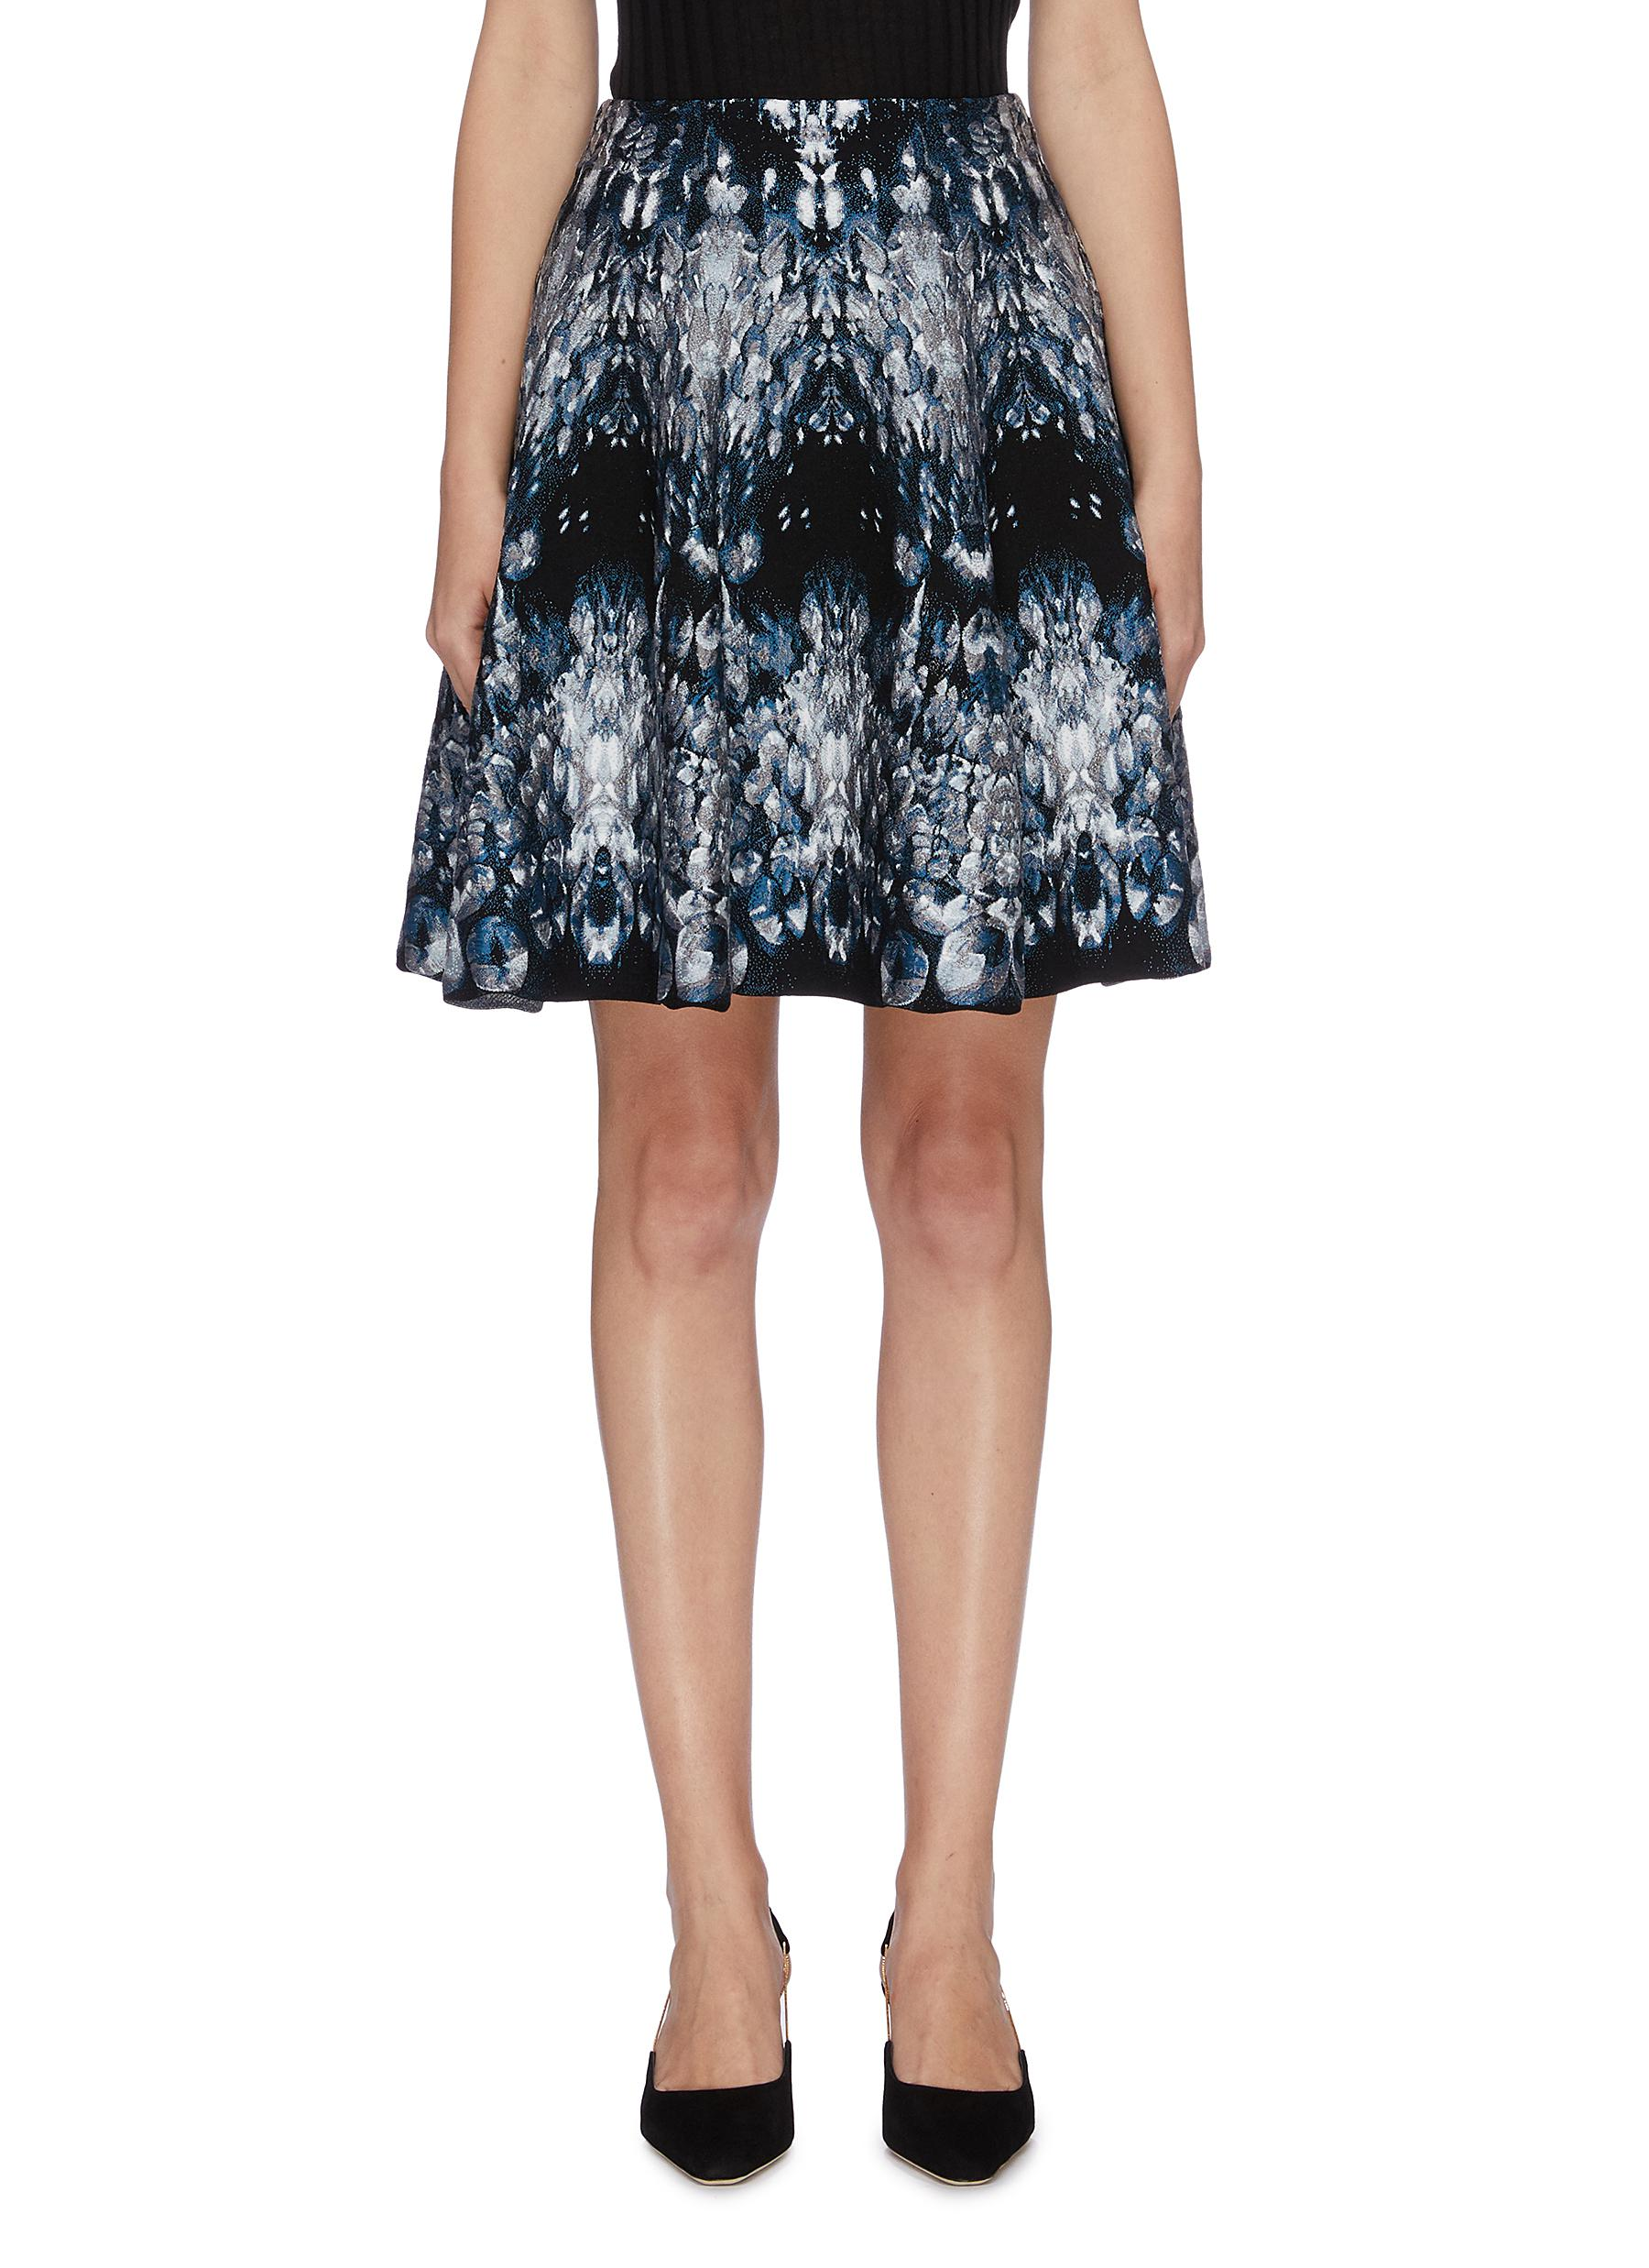 Crystal jacquard flared skirt by Alexander Mcqueen